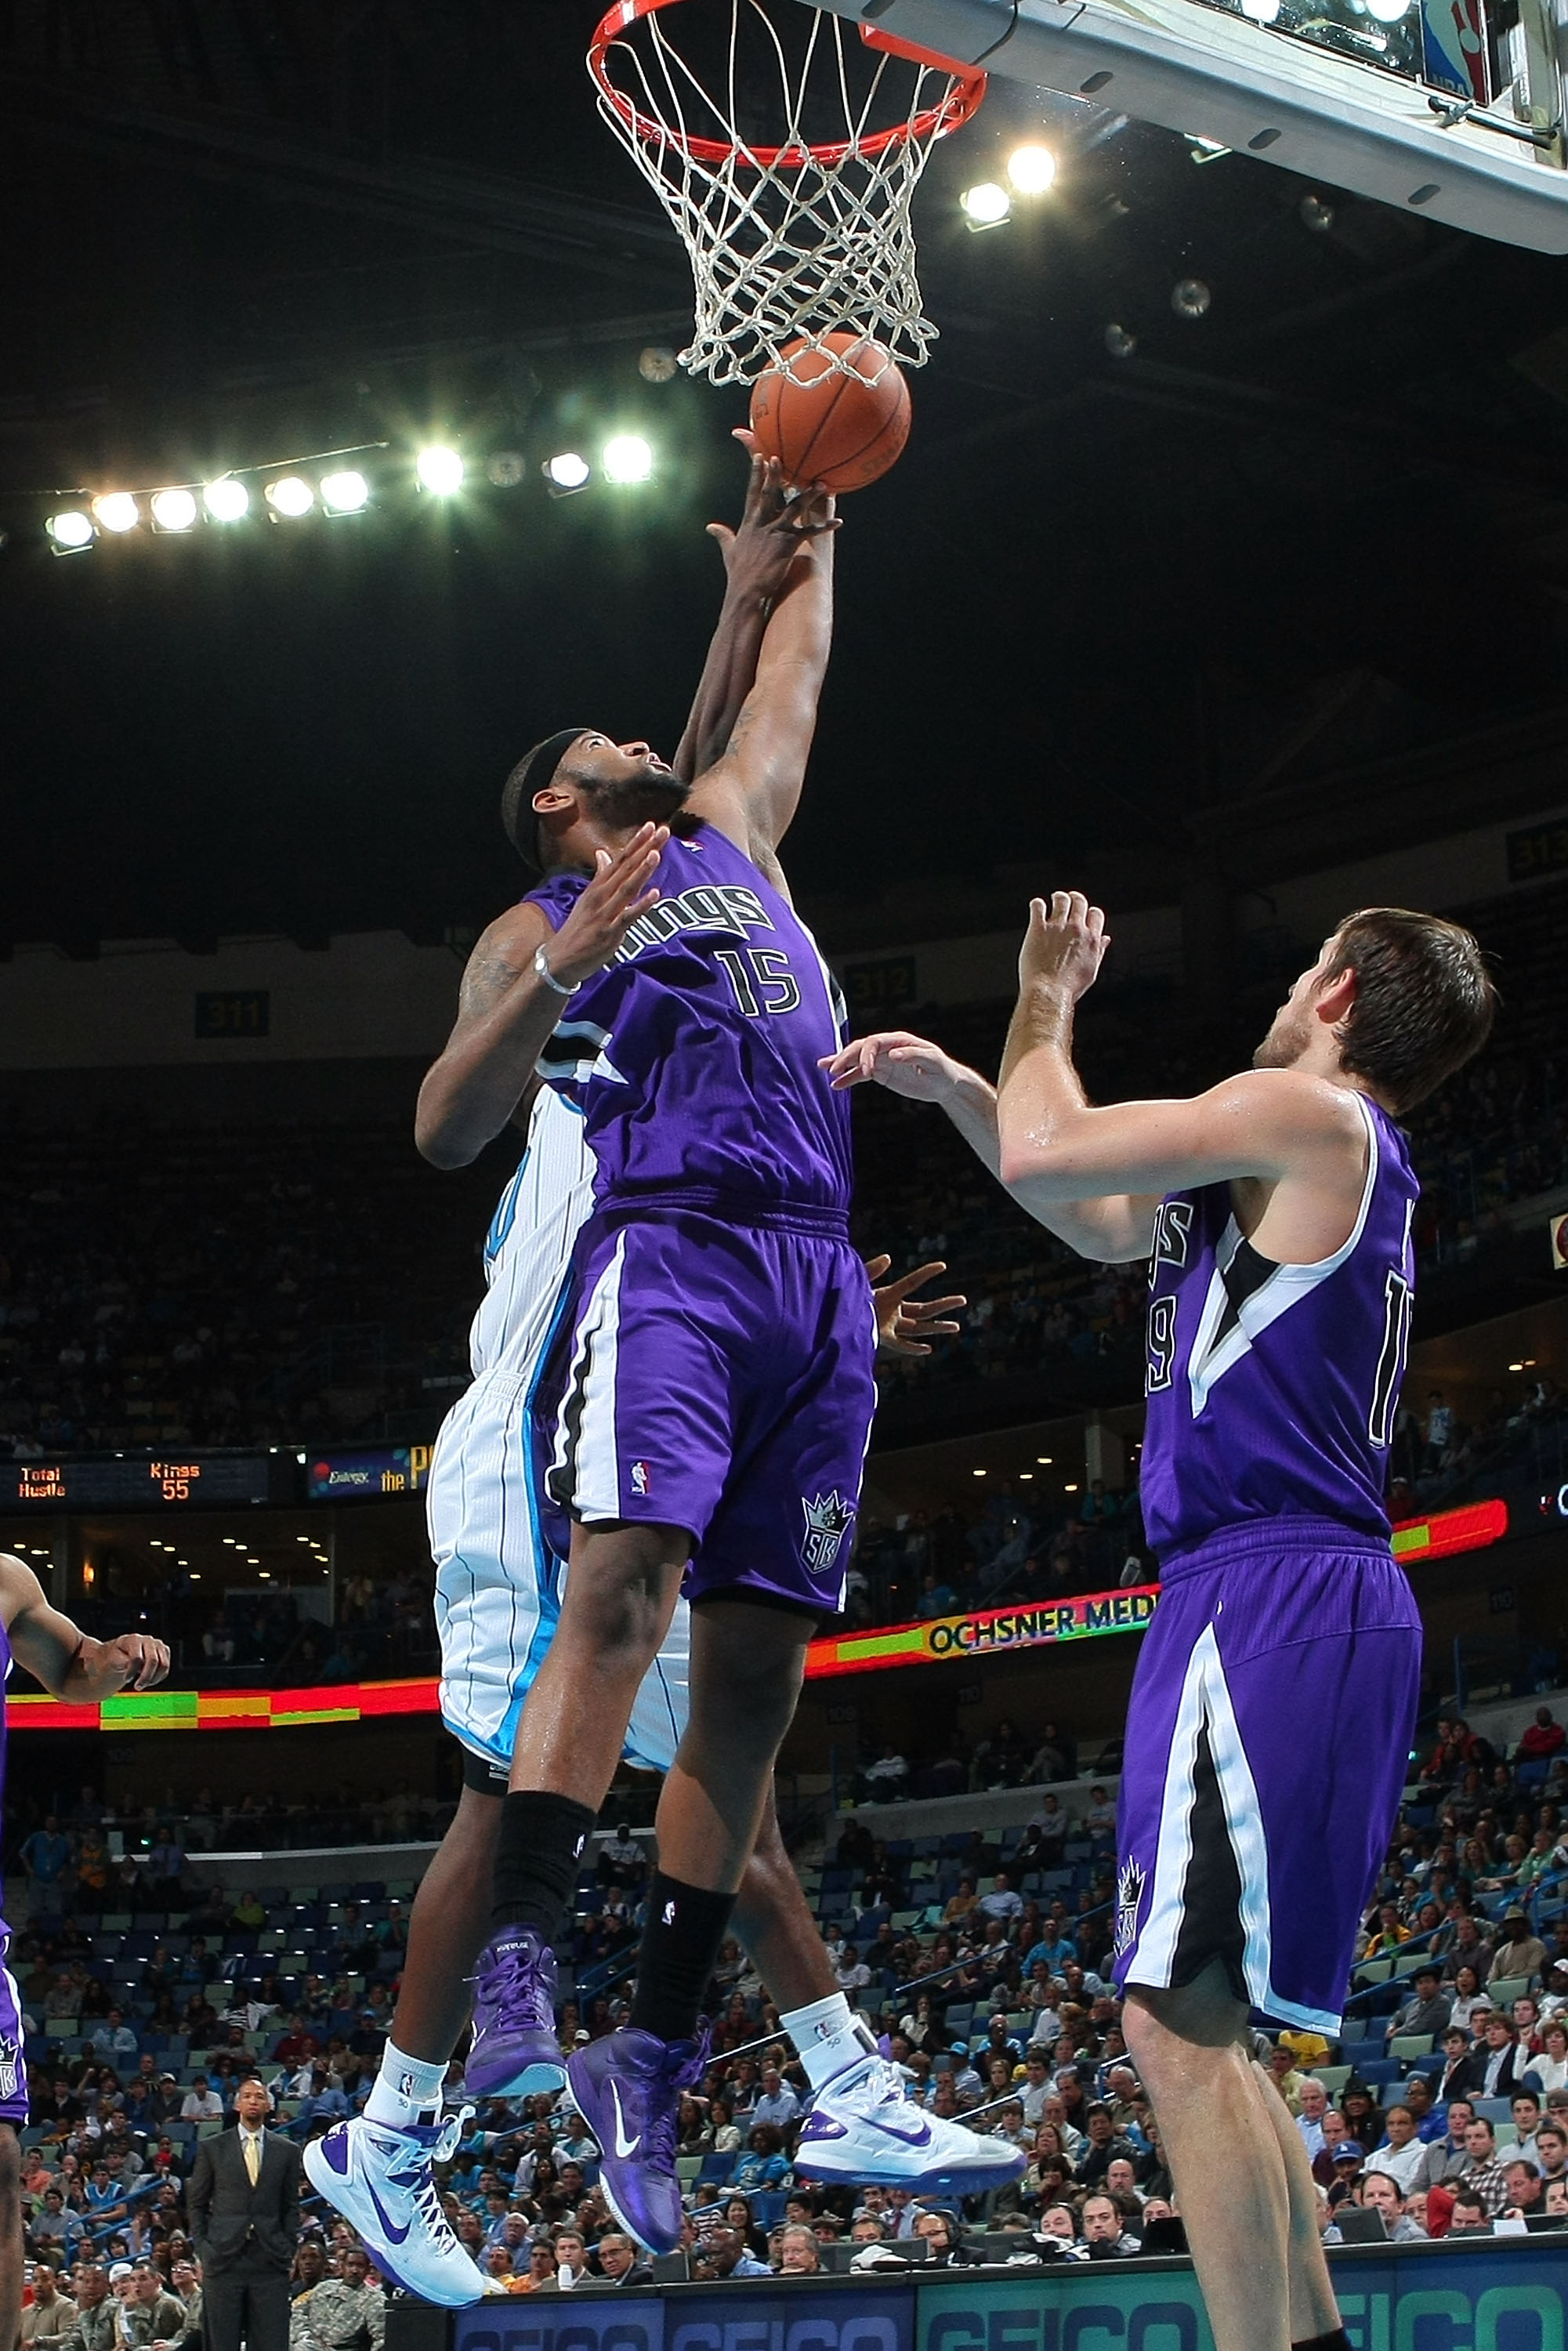 DeMarcus Cousins hitting the glass against the Hornets.